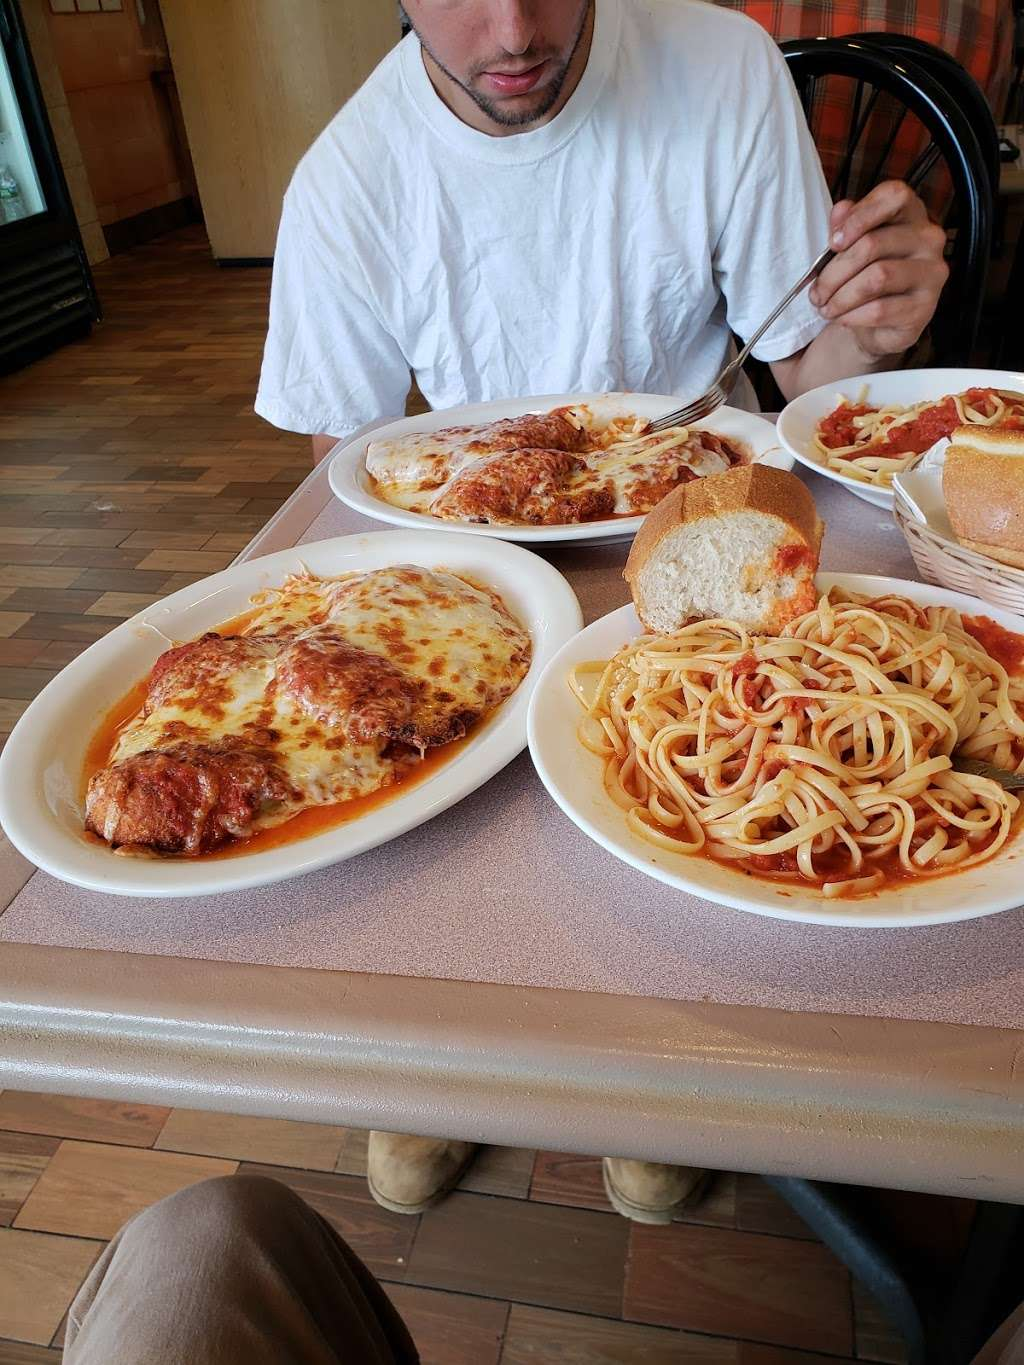 Uncle Franks Pizza - meal delivery  | Photo 7 of 10 | Address: 140 Veterans Plaza, Dumont, NJ 07628, USA | Phone: (201) 385-2854